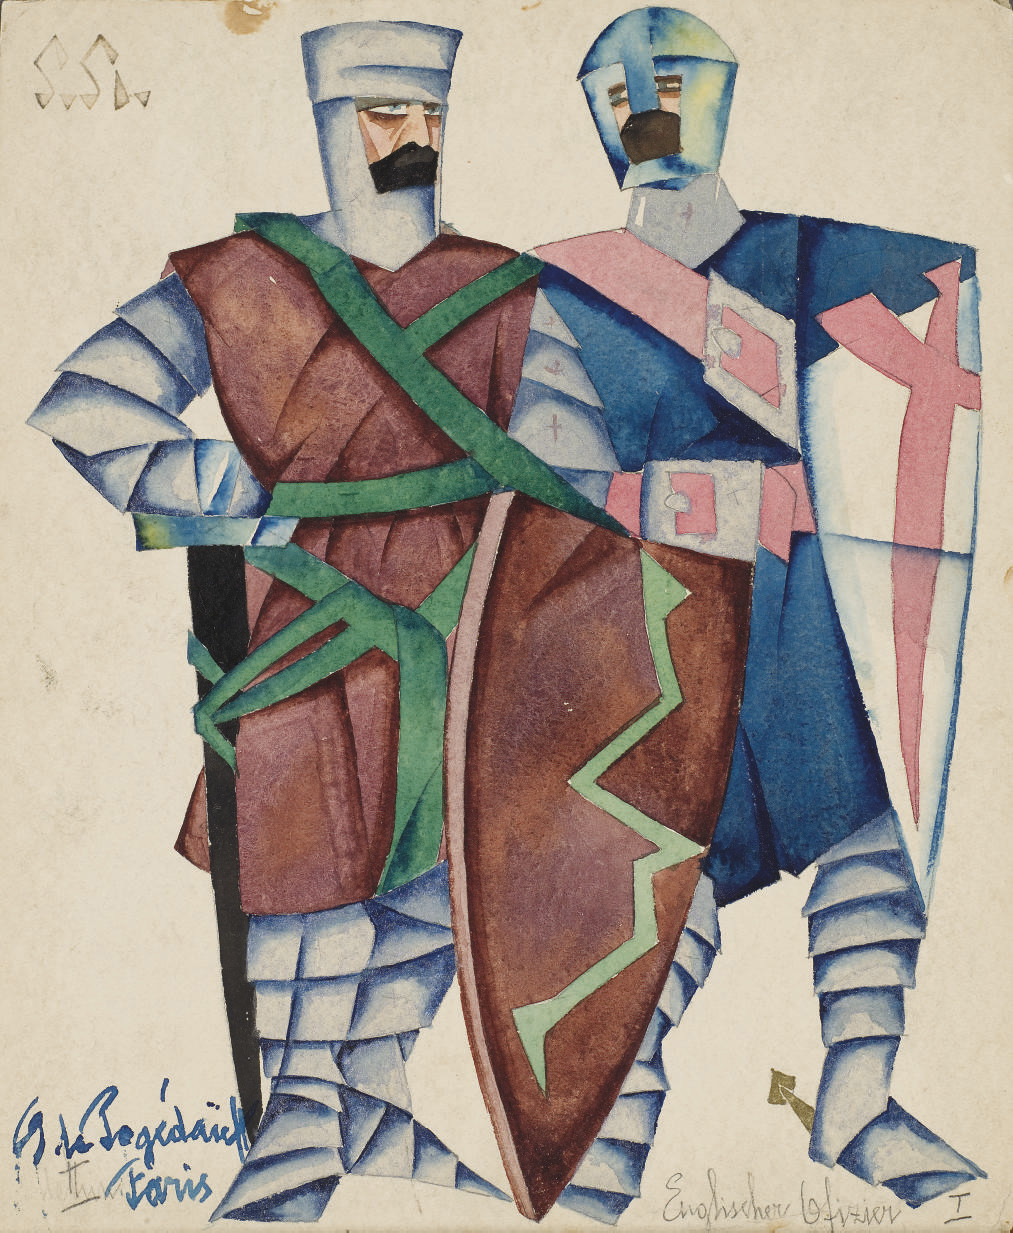 Costume designs for Shakespeare's The life and death of King John: Two English Knights